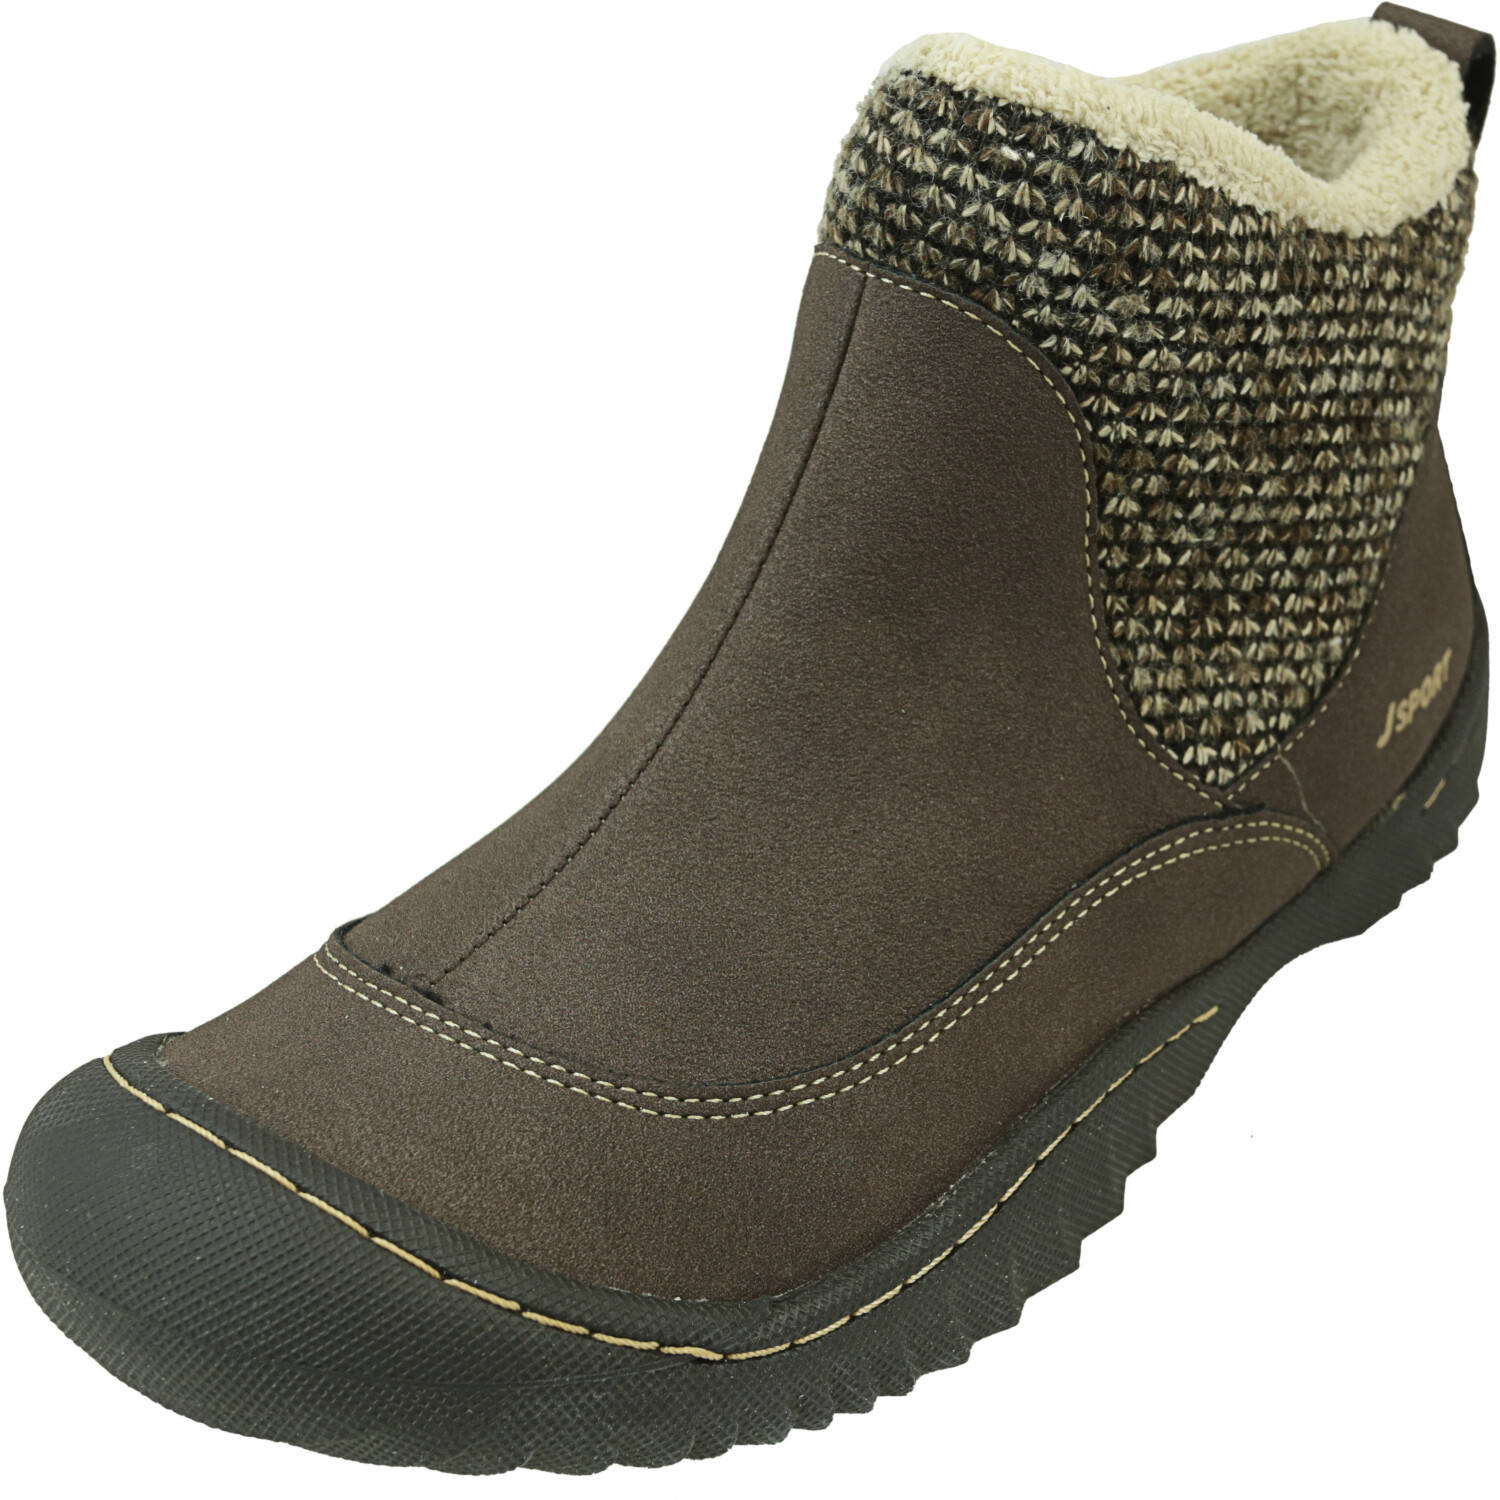 Jsport Women's Marcy Brown Ankle-High Boot - 7M